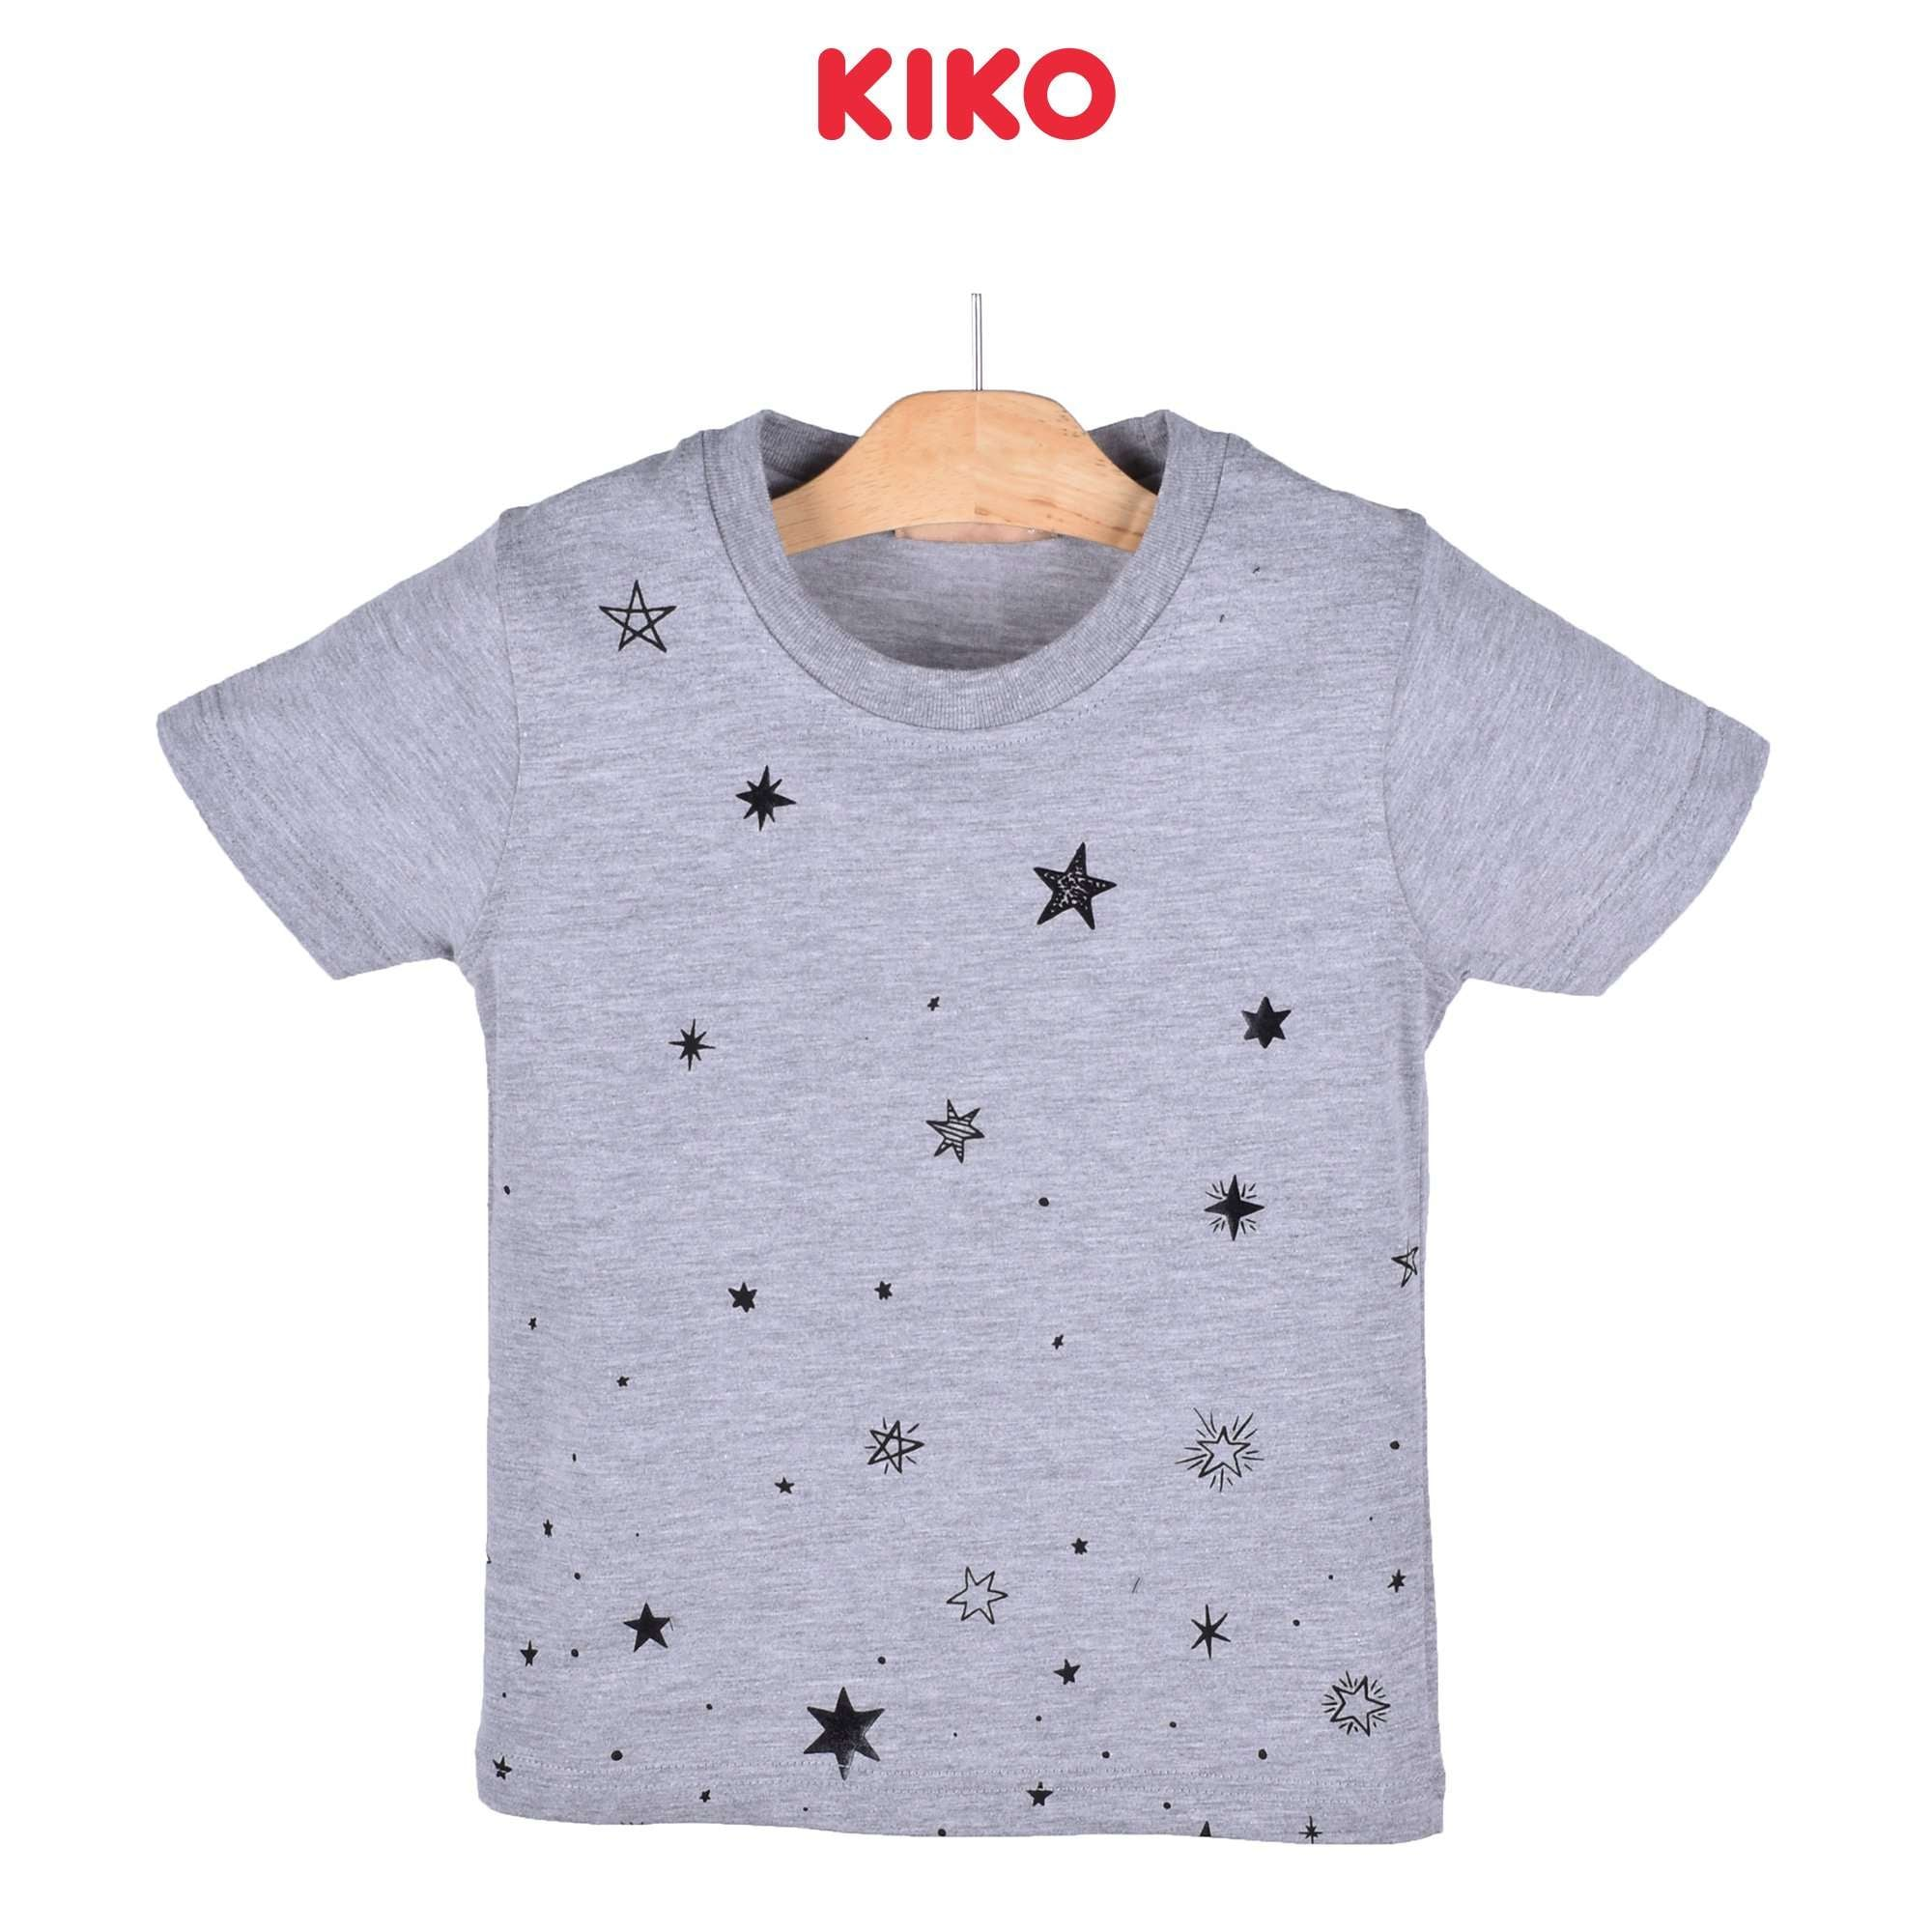 KIKO Boy Short Sleeve Tee 121245-113 : Buy KIKO online at CMG.MY